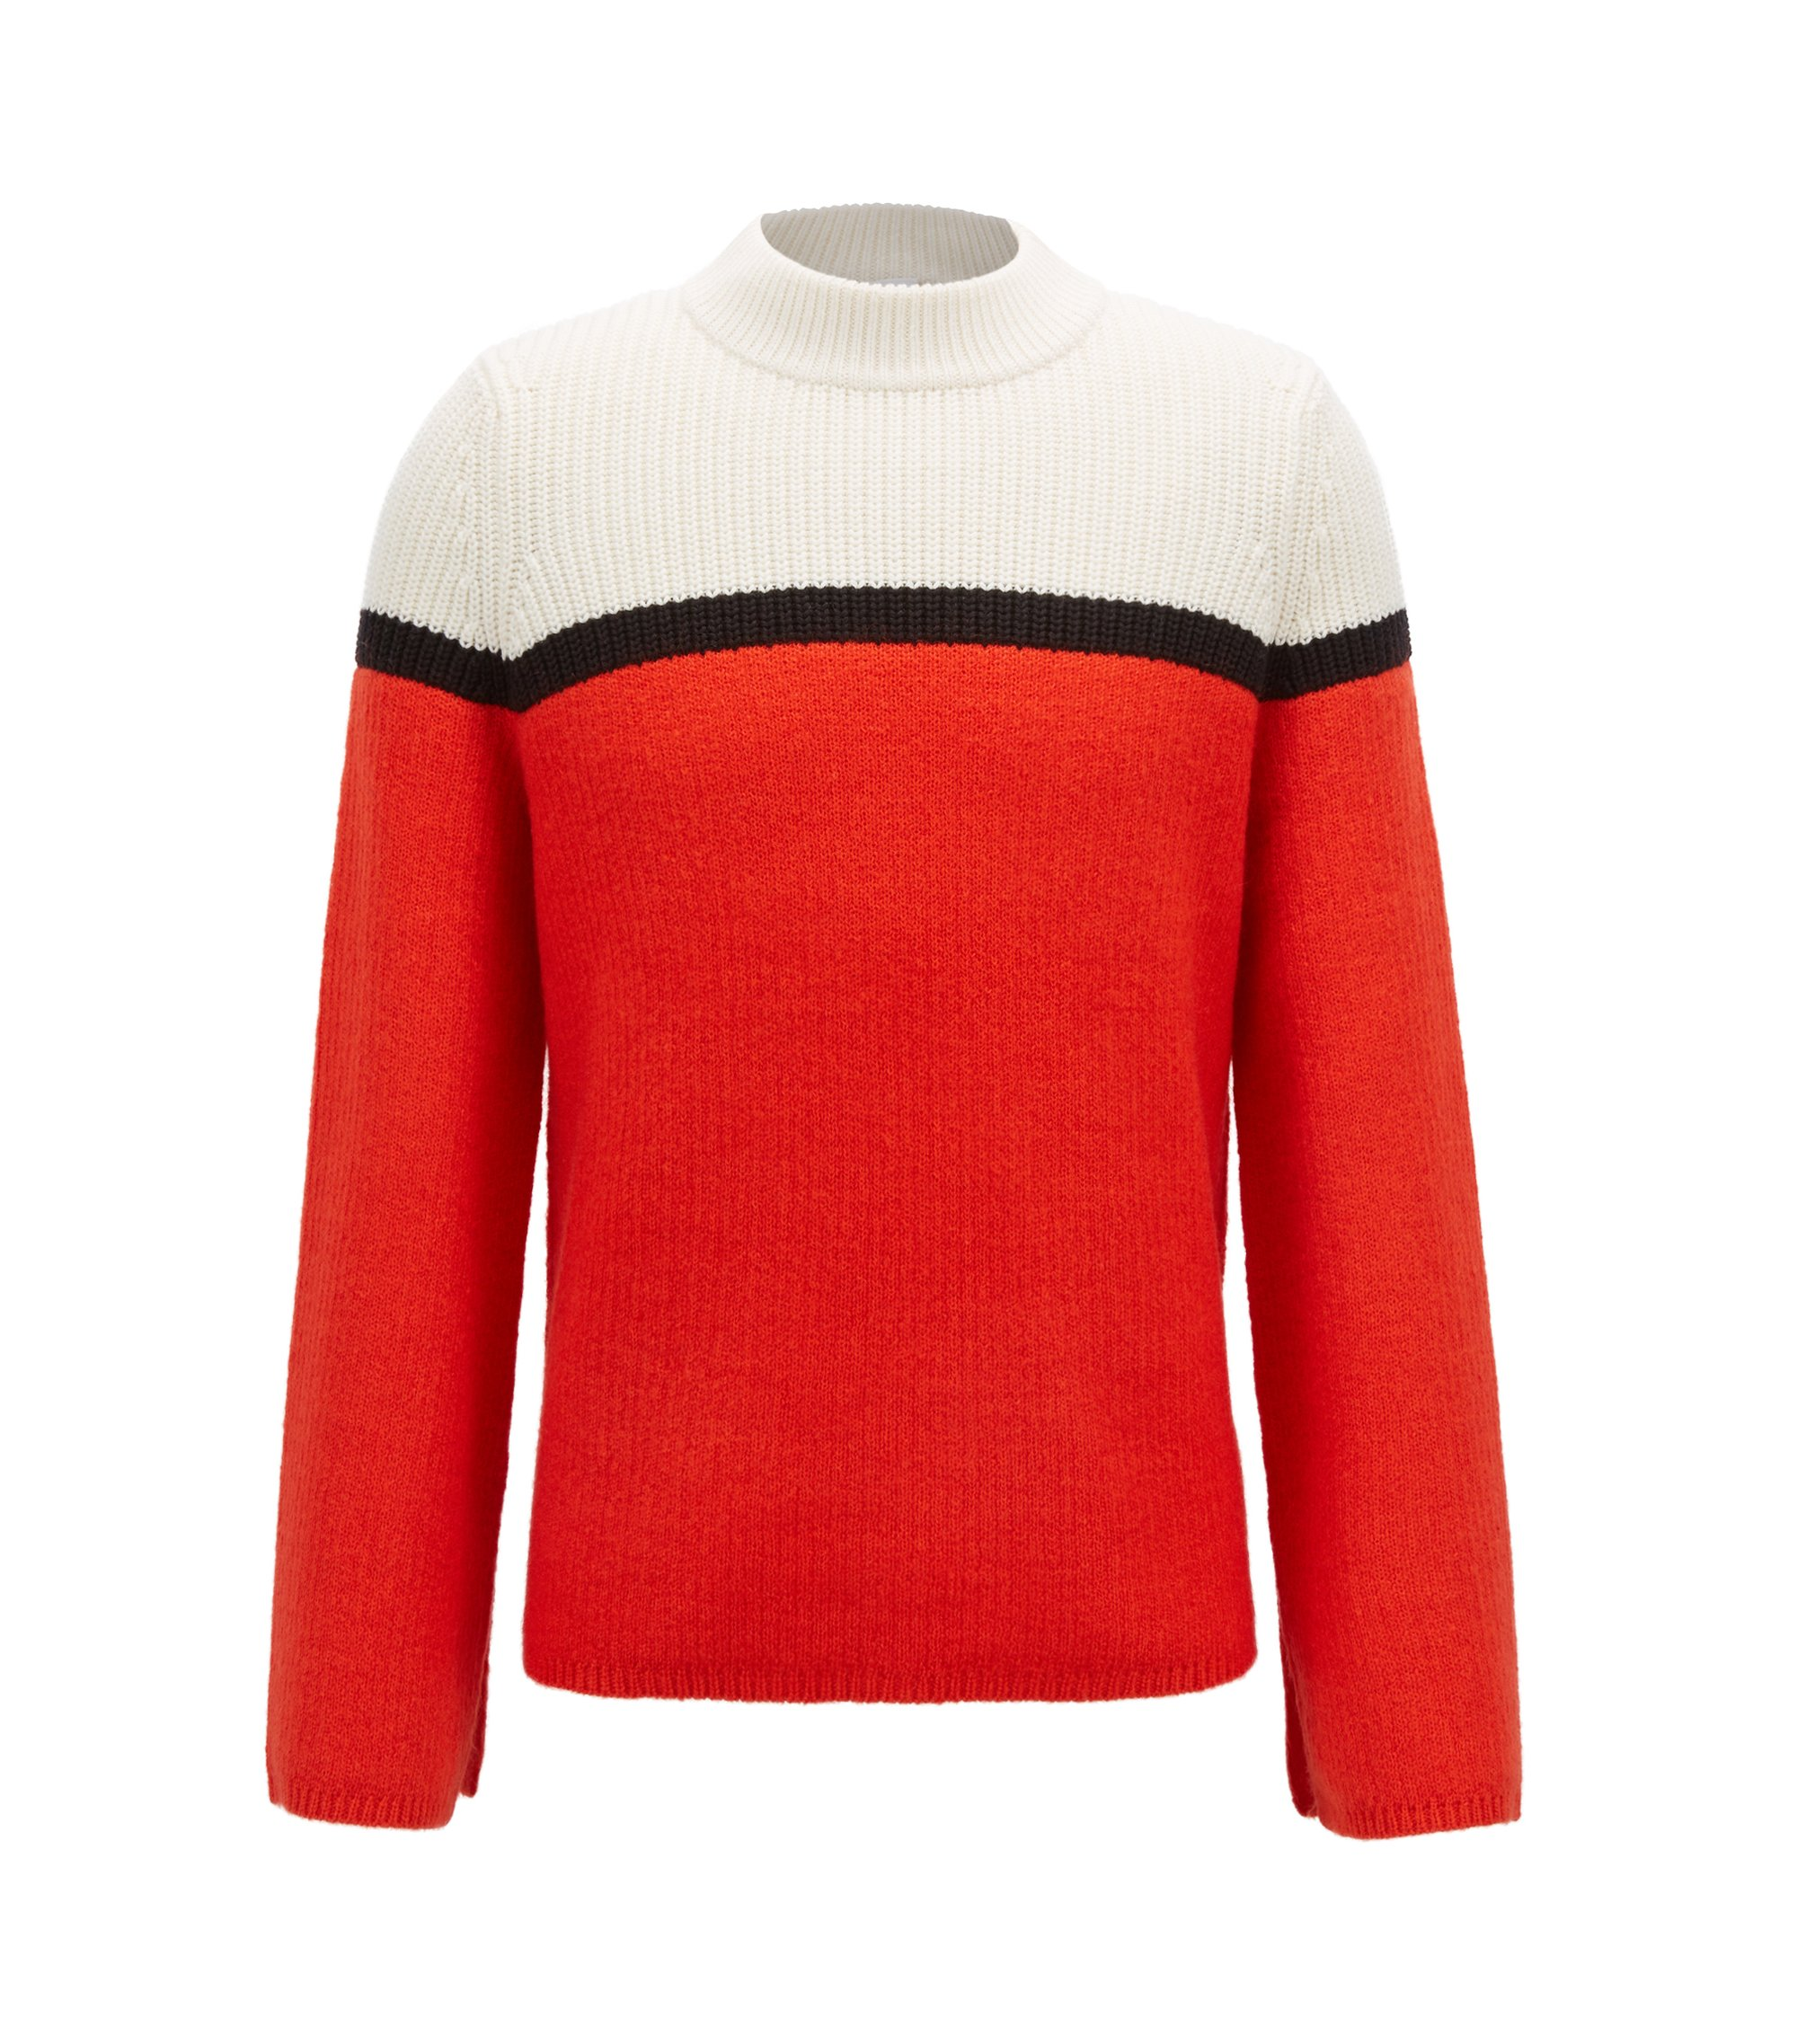 Block-stripe turtleneck sweater in mixed structures, Red